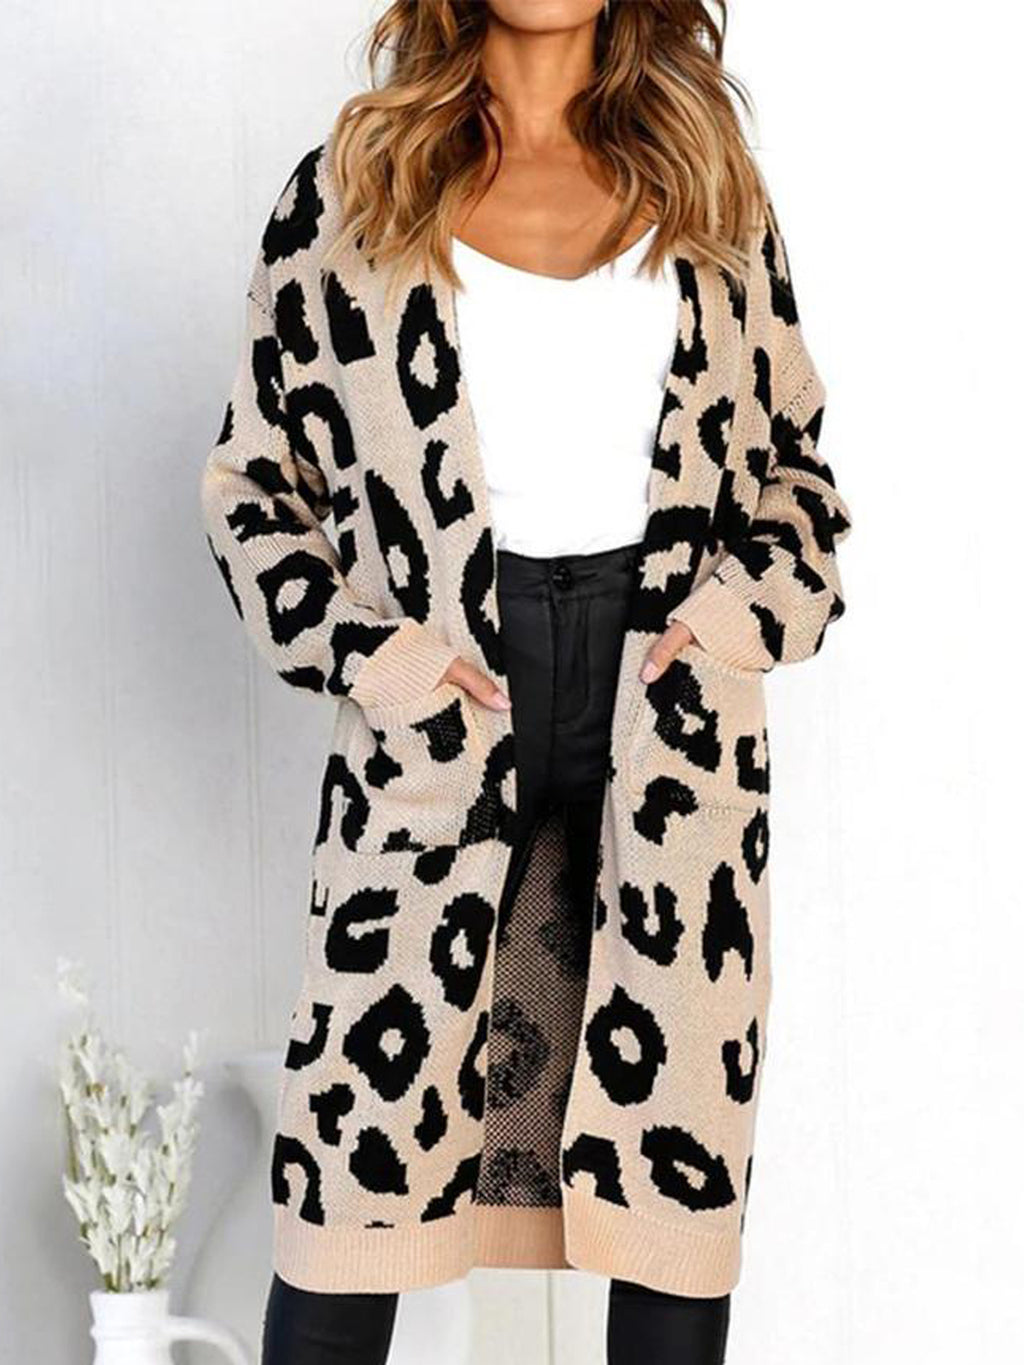 Women's Long Sleeves Leopard Print Knitting Cardigan Coats with Pocket